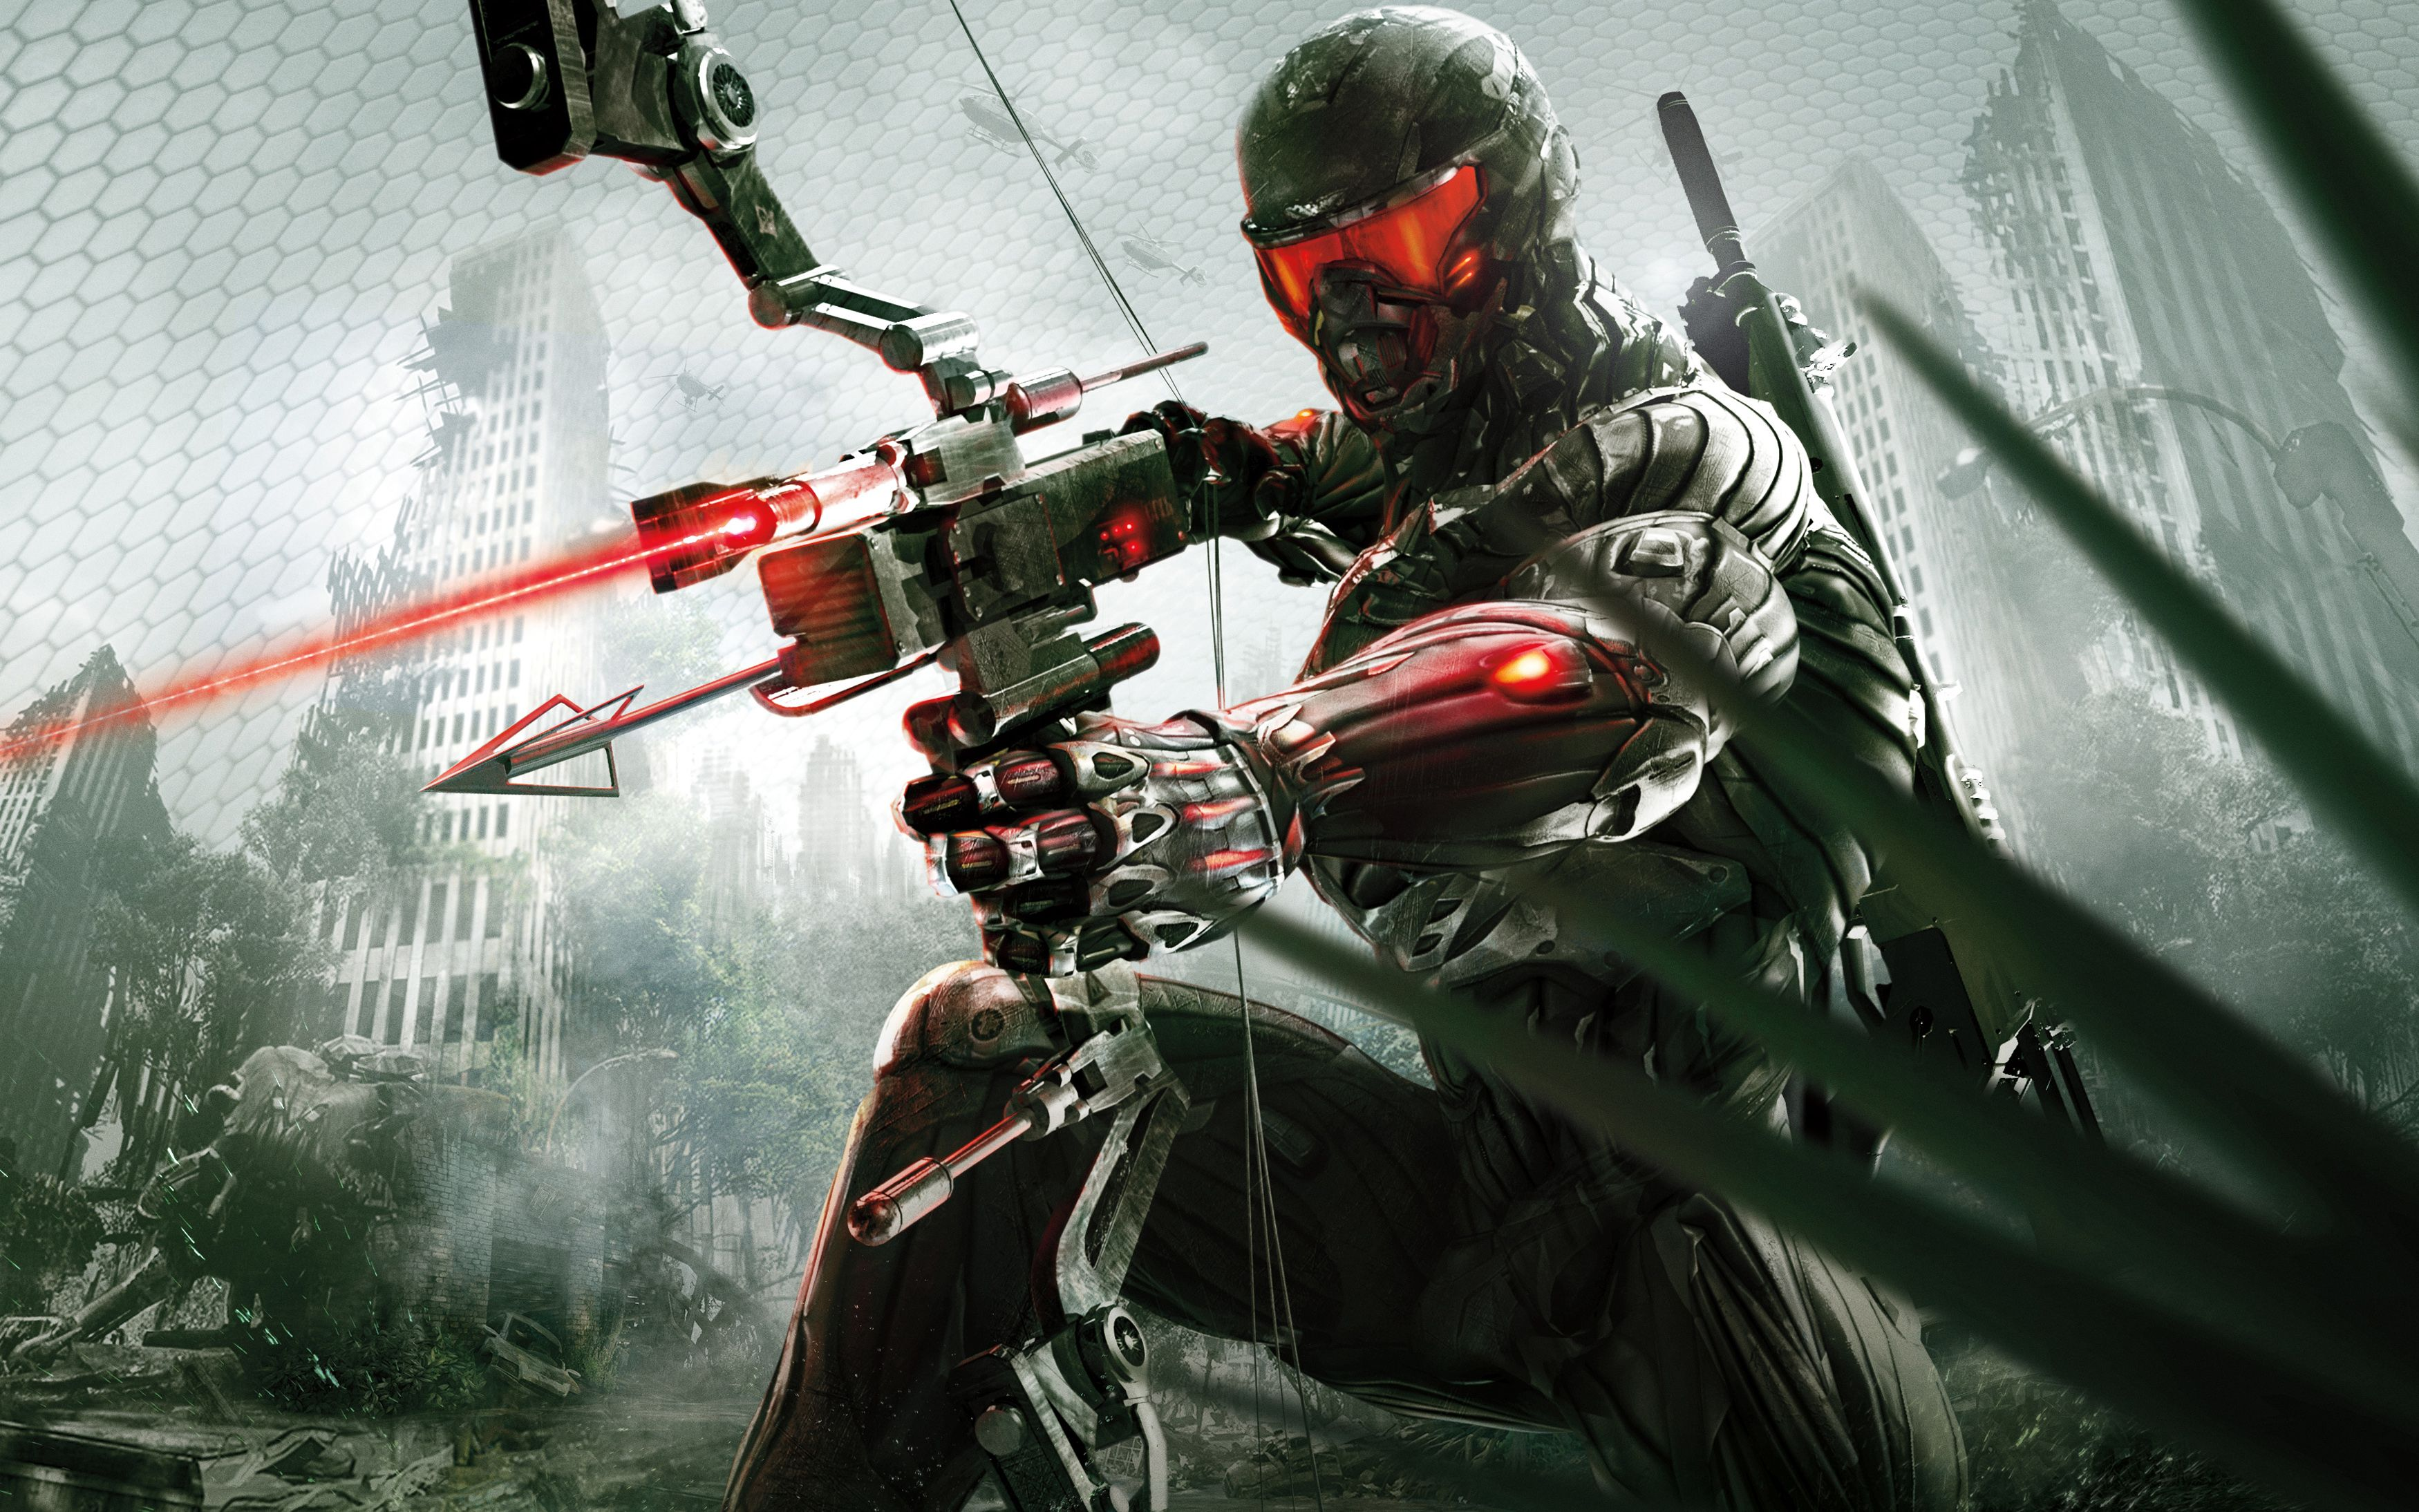 Crysis 3 Game Pictures Gaming Wallpapers Video Game Art